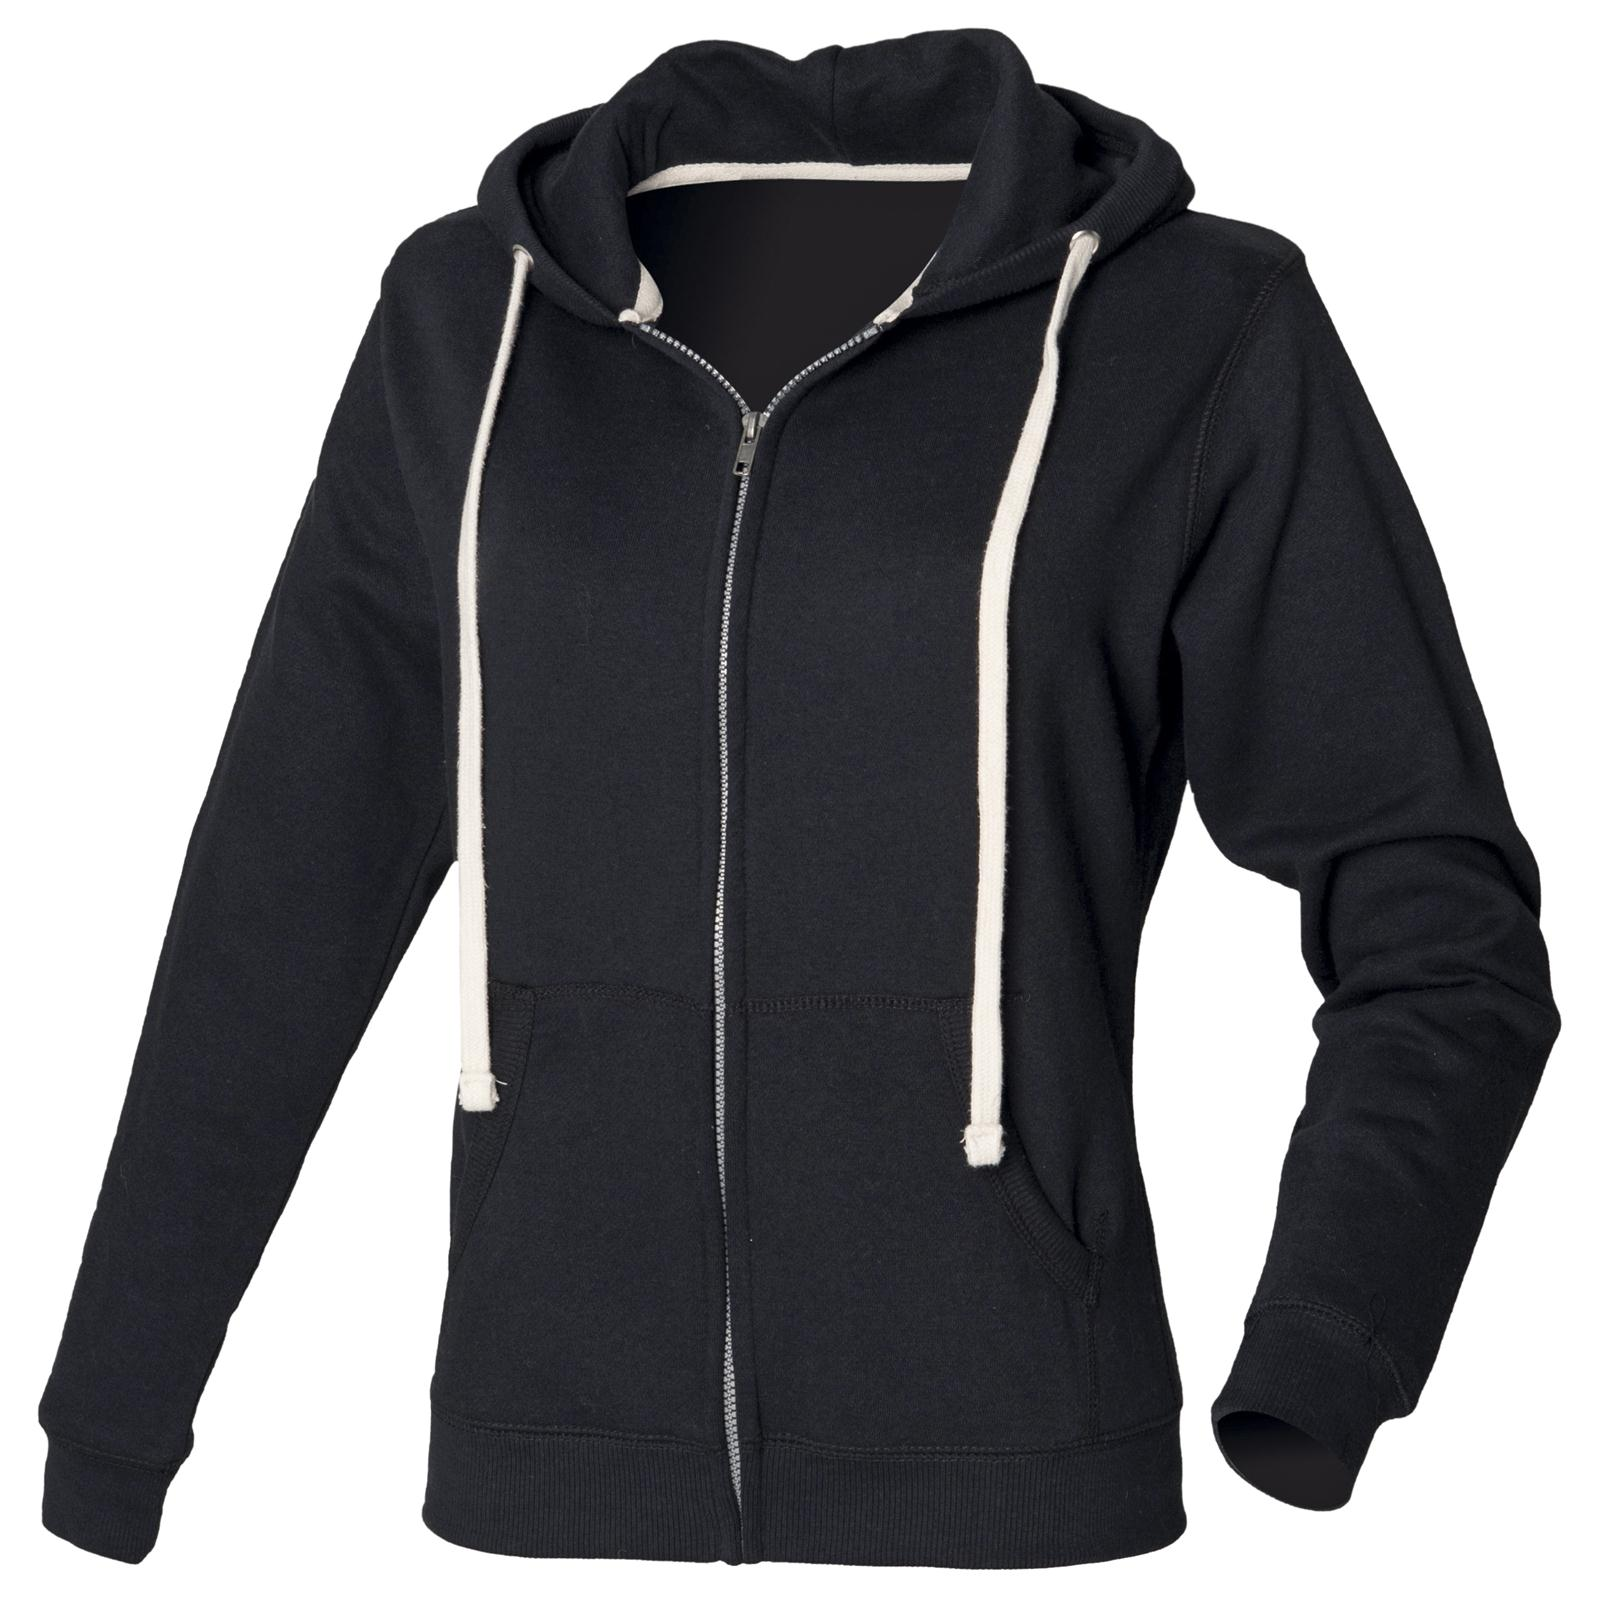 New FRONT ROW Womens Ladies Heavyweight Zip Up Hoodie ...